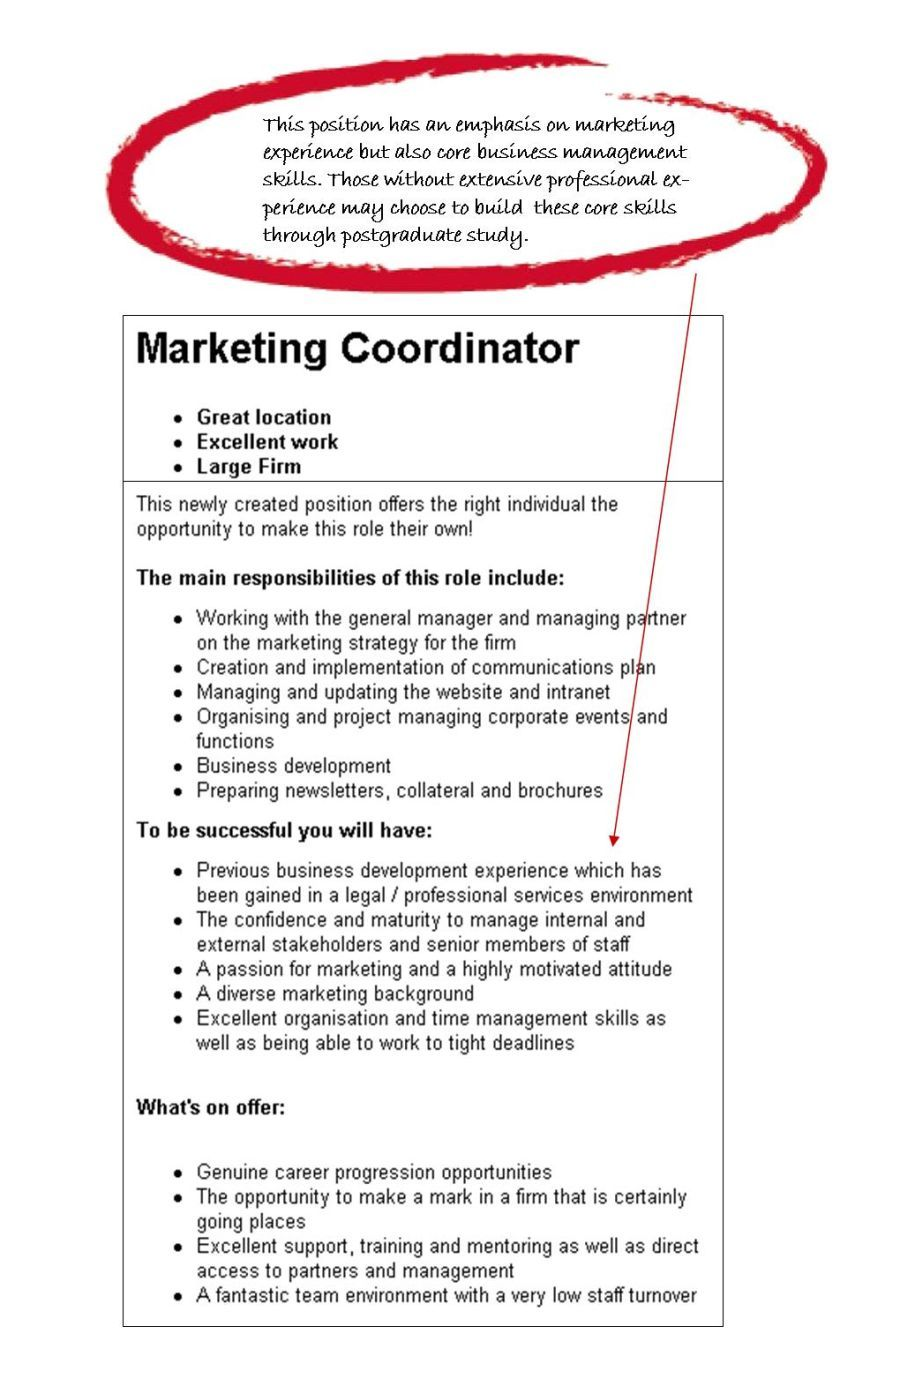 Resume Mission Statement Examples Objectives For Resume  Resume  Pinterest  Resume Objective And